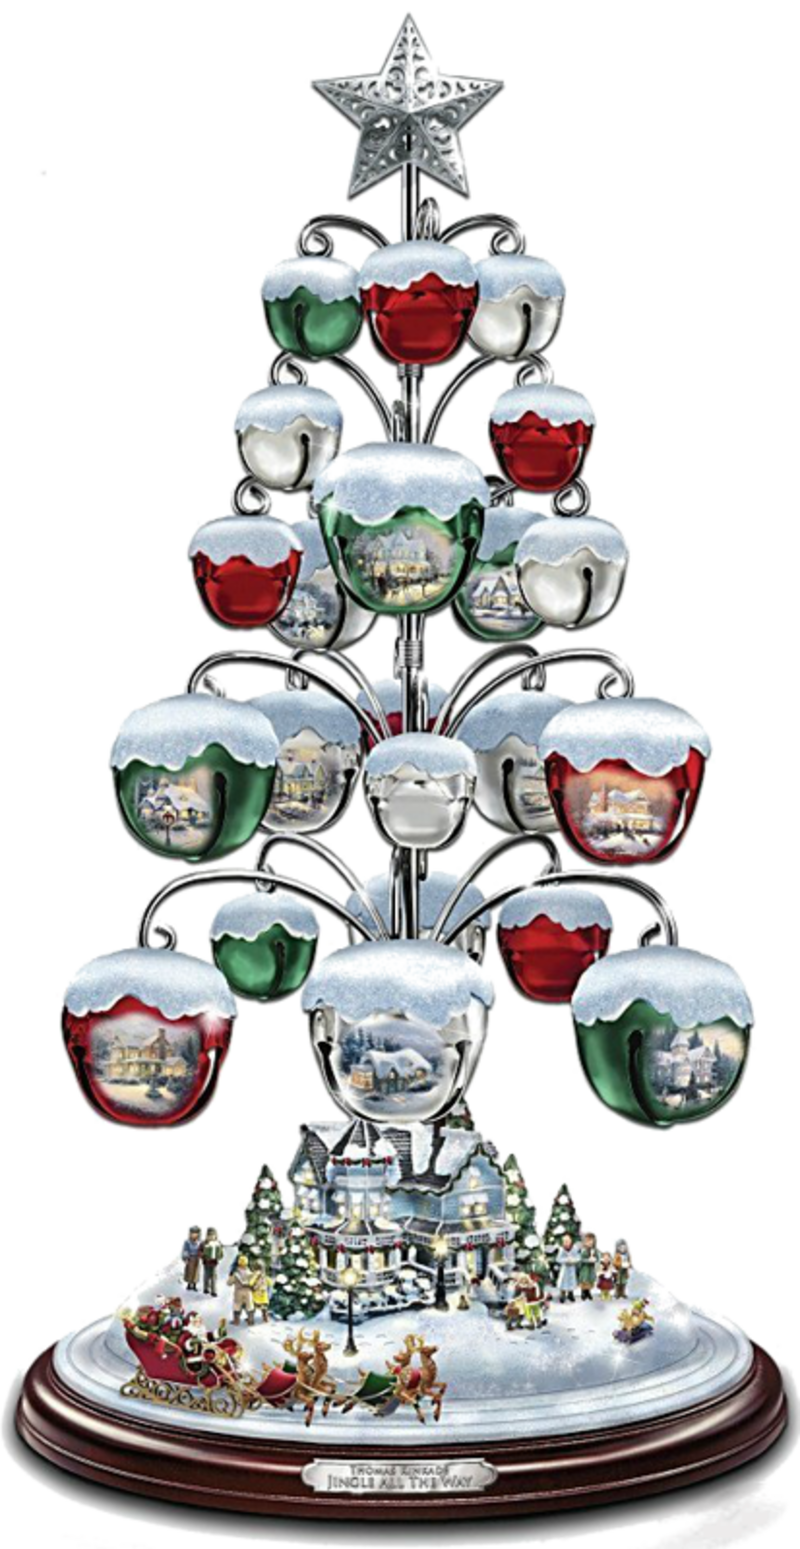 Jingle All The Way Bell Ornament Tabletop Christmas   Thomas Kinkade Jingle  All The Way Bell Ornament Tabletop Christmas Tree By The Bradford Exchange  Link